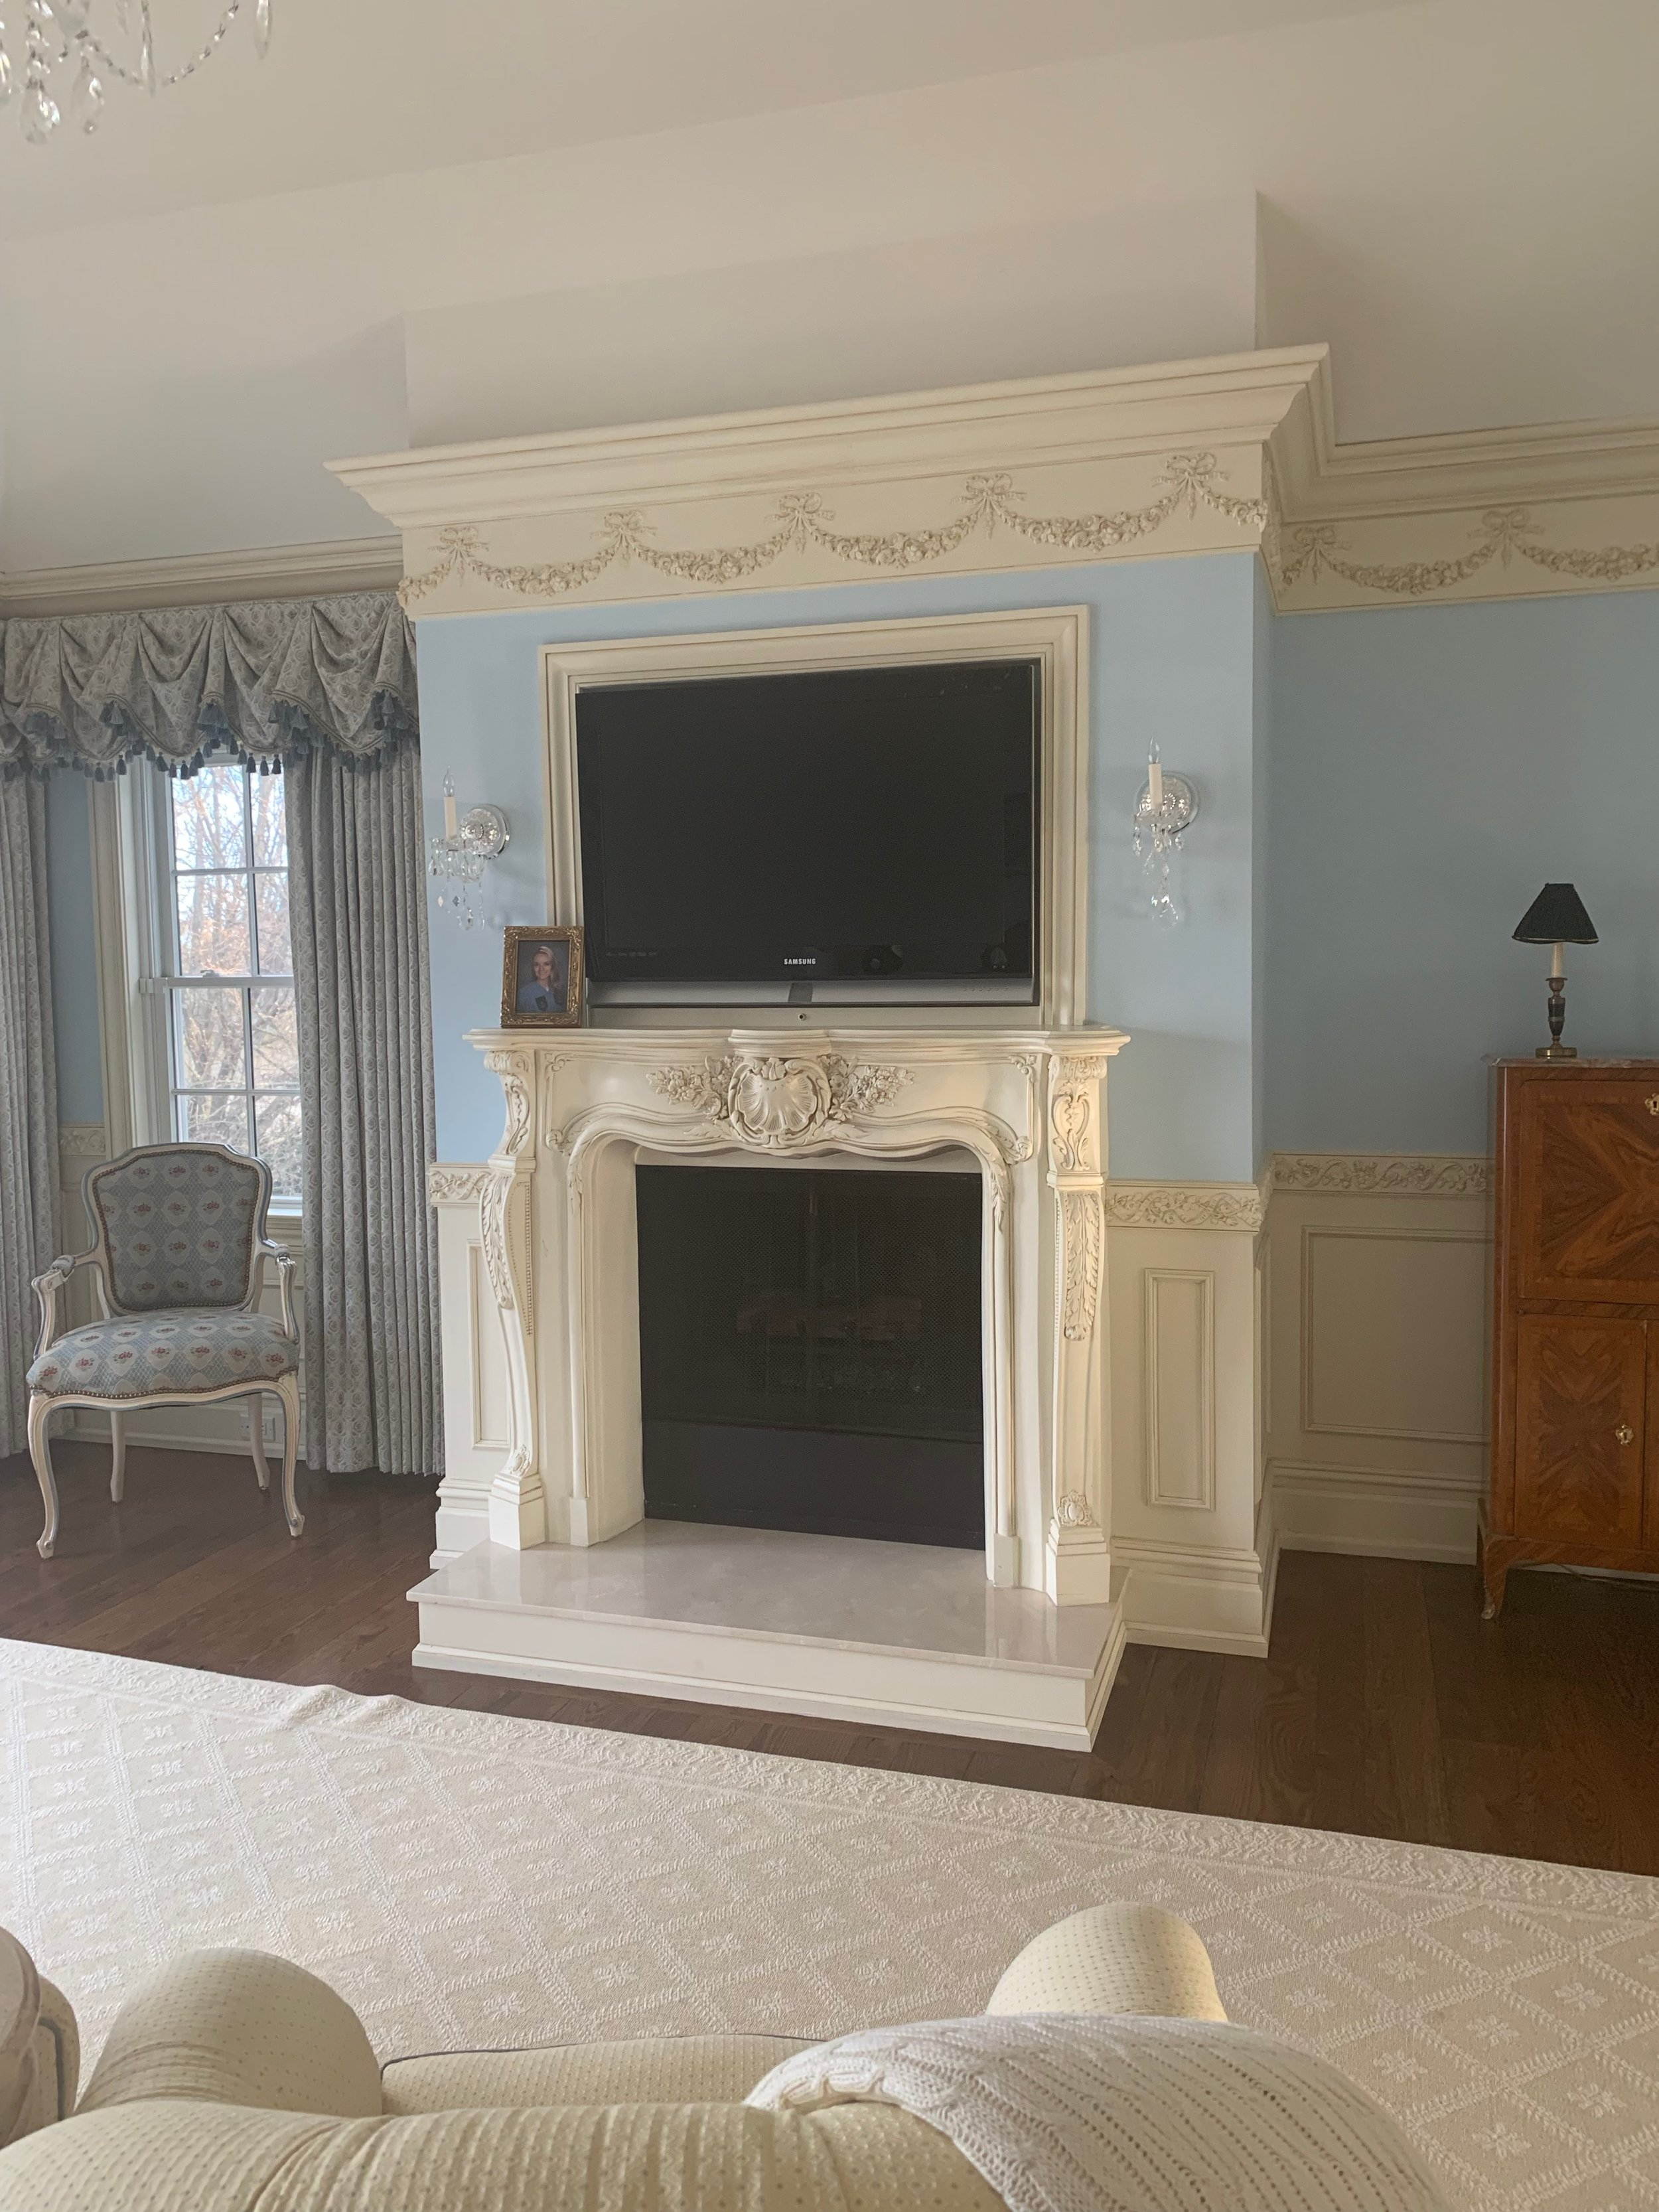 Quogue-master-bedroom-before.jpeg